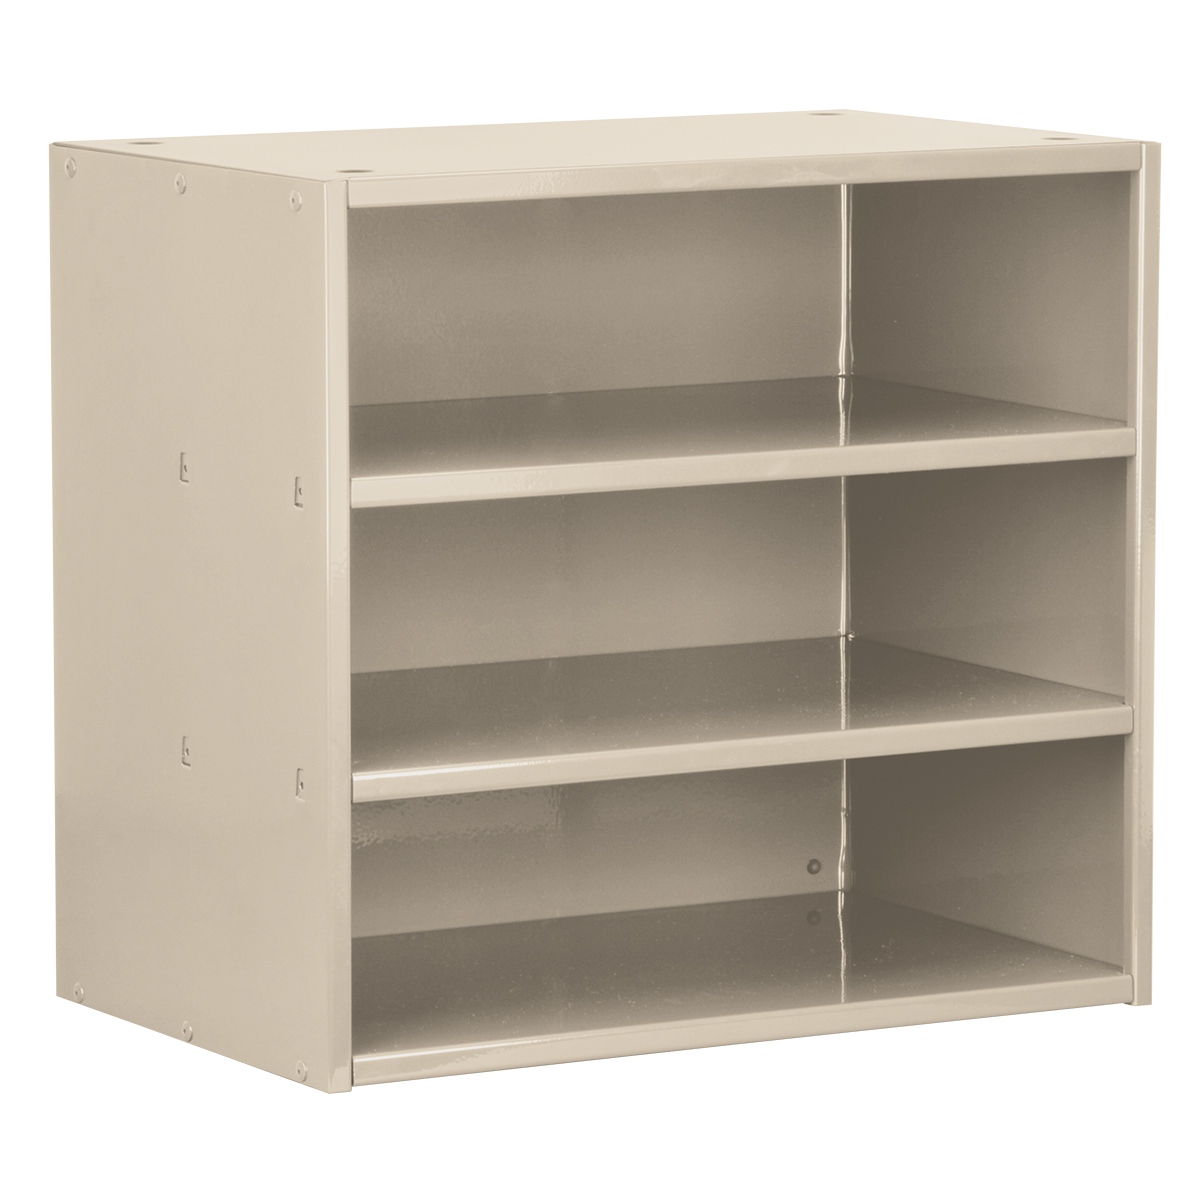 Item DISCONTINUED by Manufacturer.  Modular Cabinet, 18x11x16, no Drawers, Putty (AD1811P).  This item sold in carton quantities of 1.